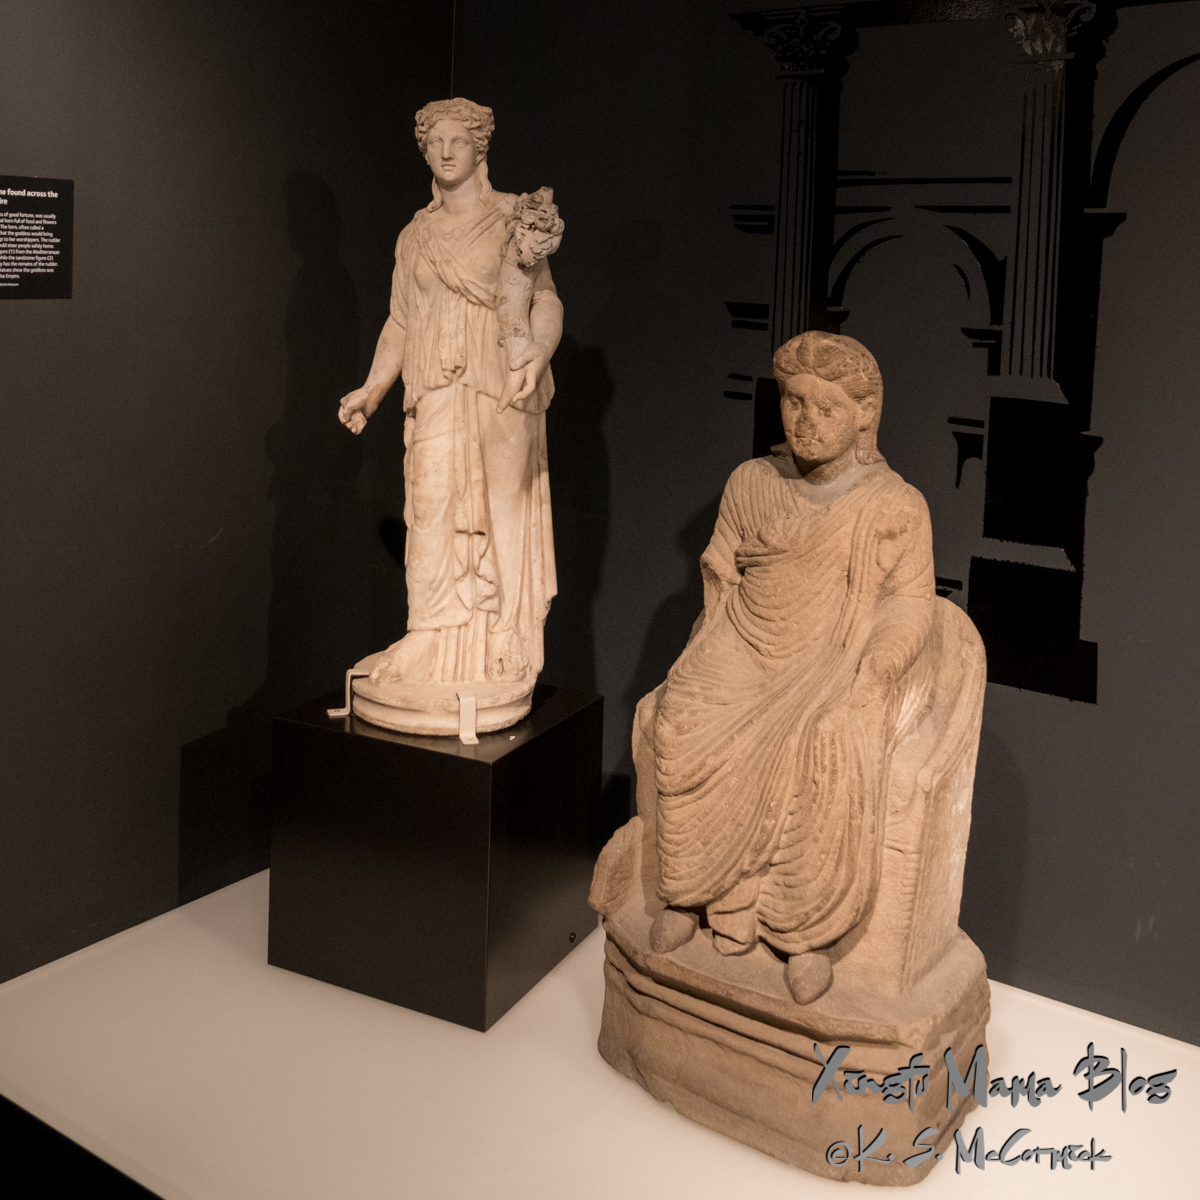 Two Roman era stone carvings of Minerva, a marble one from Rome and a sandstone one made in Cumbria during the Roman occupation. At Tullie House Museum, Carlisle, Cumbria, England.